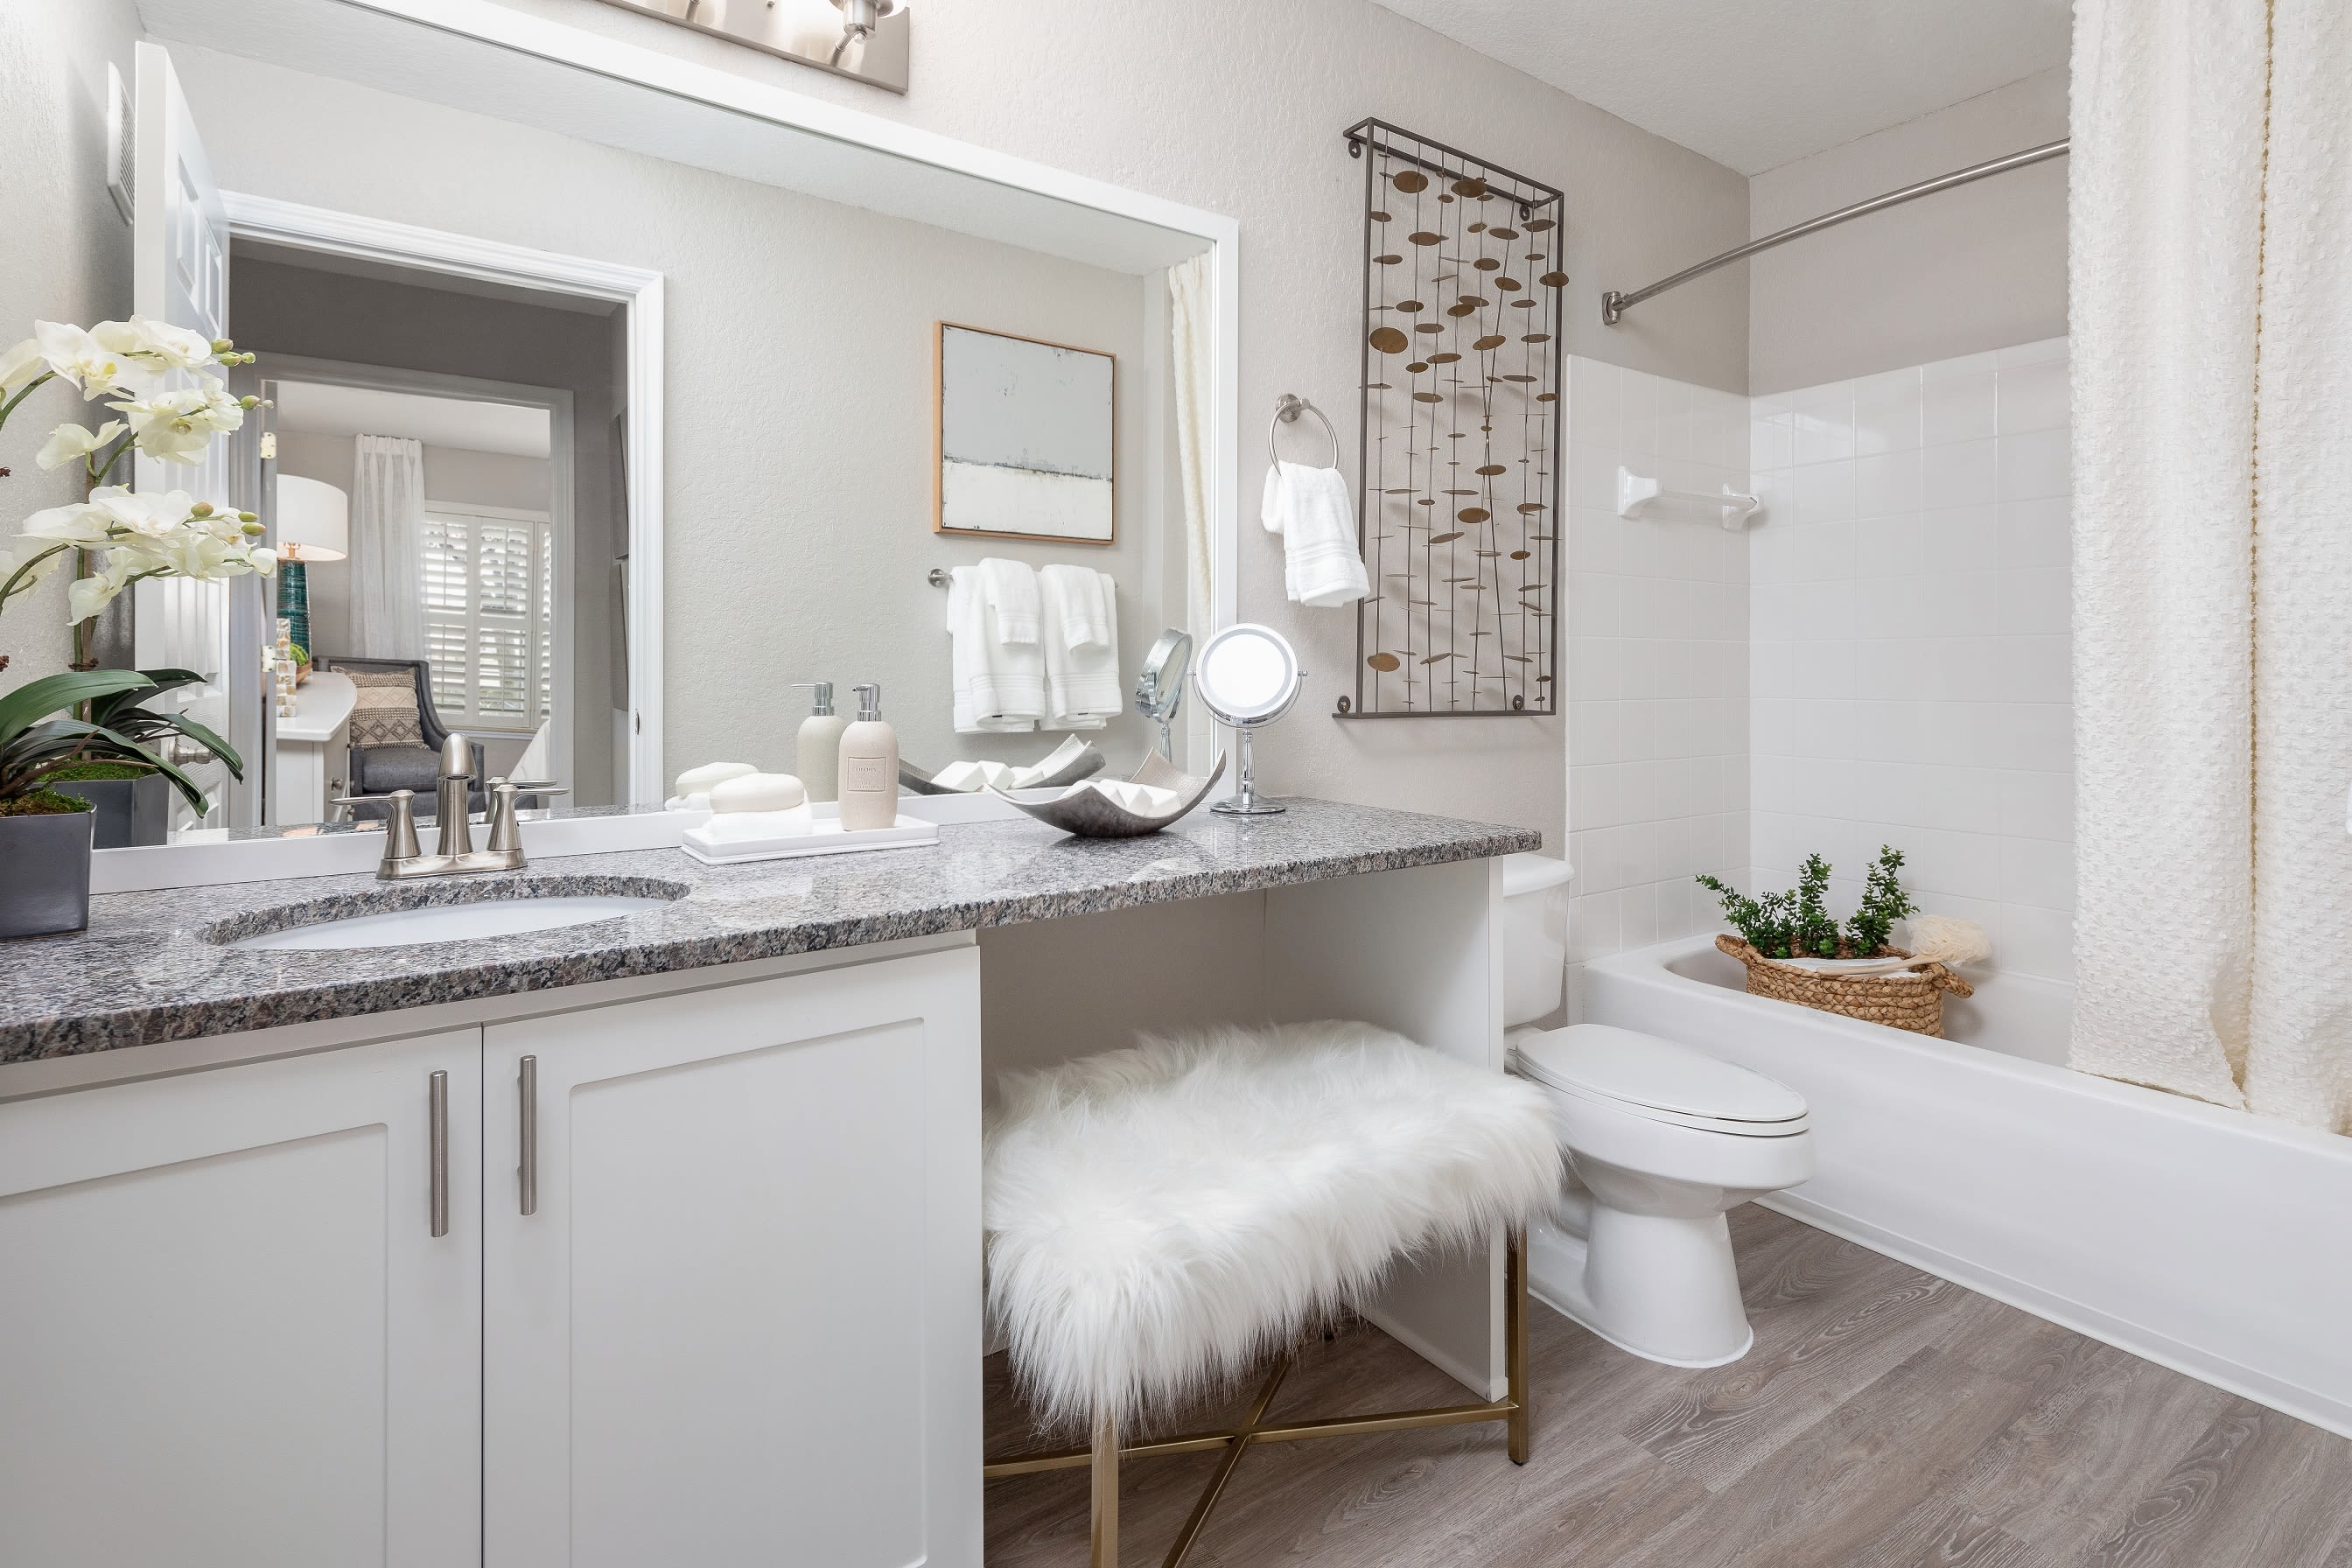 Large bathroom with granite countertops and bathtub at Amira at Westly in Tampa, Florida